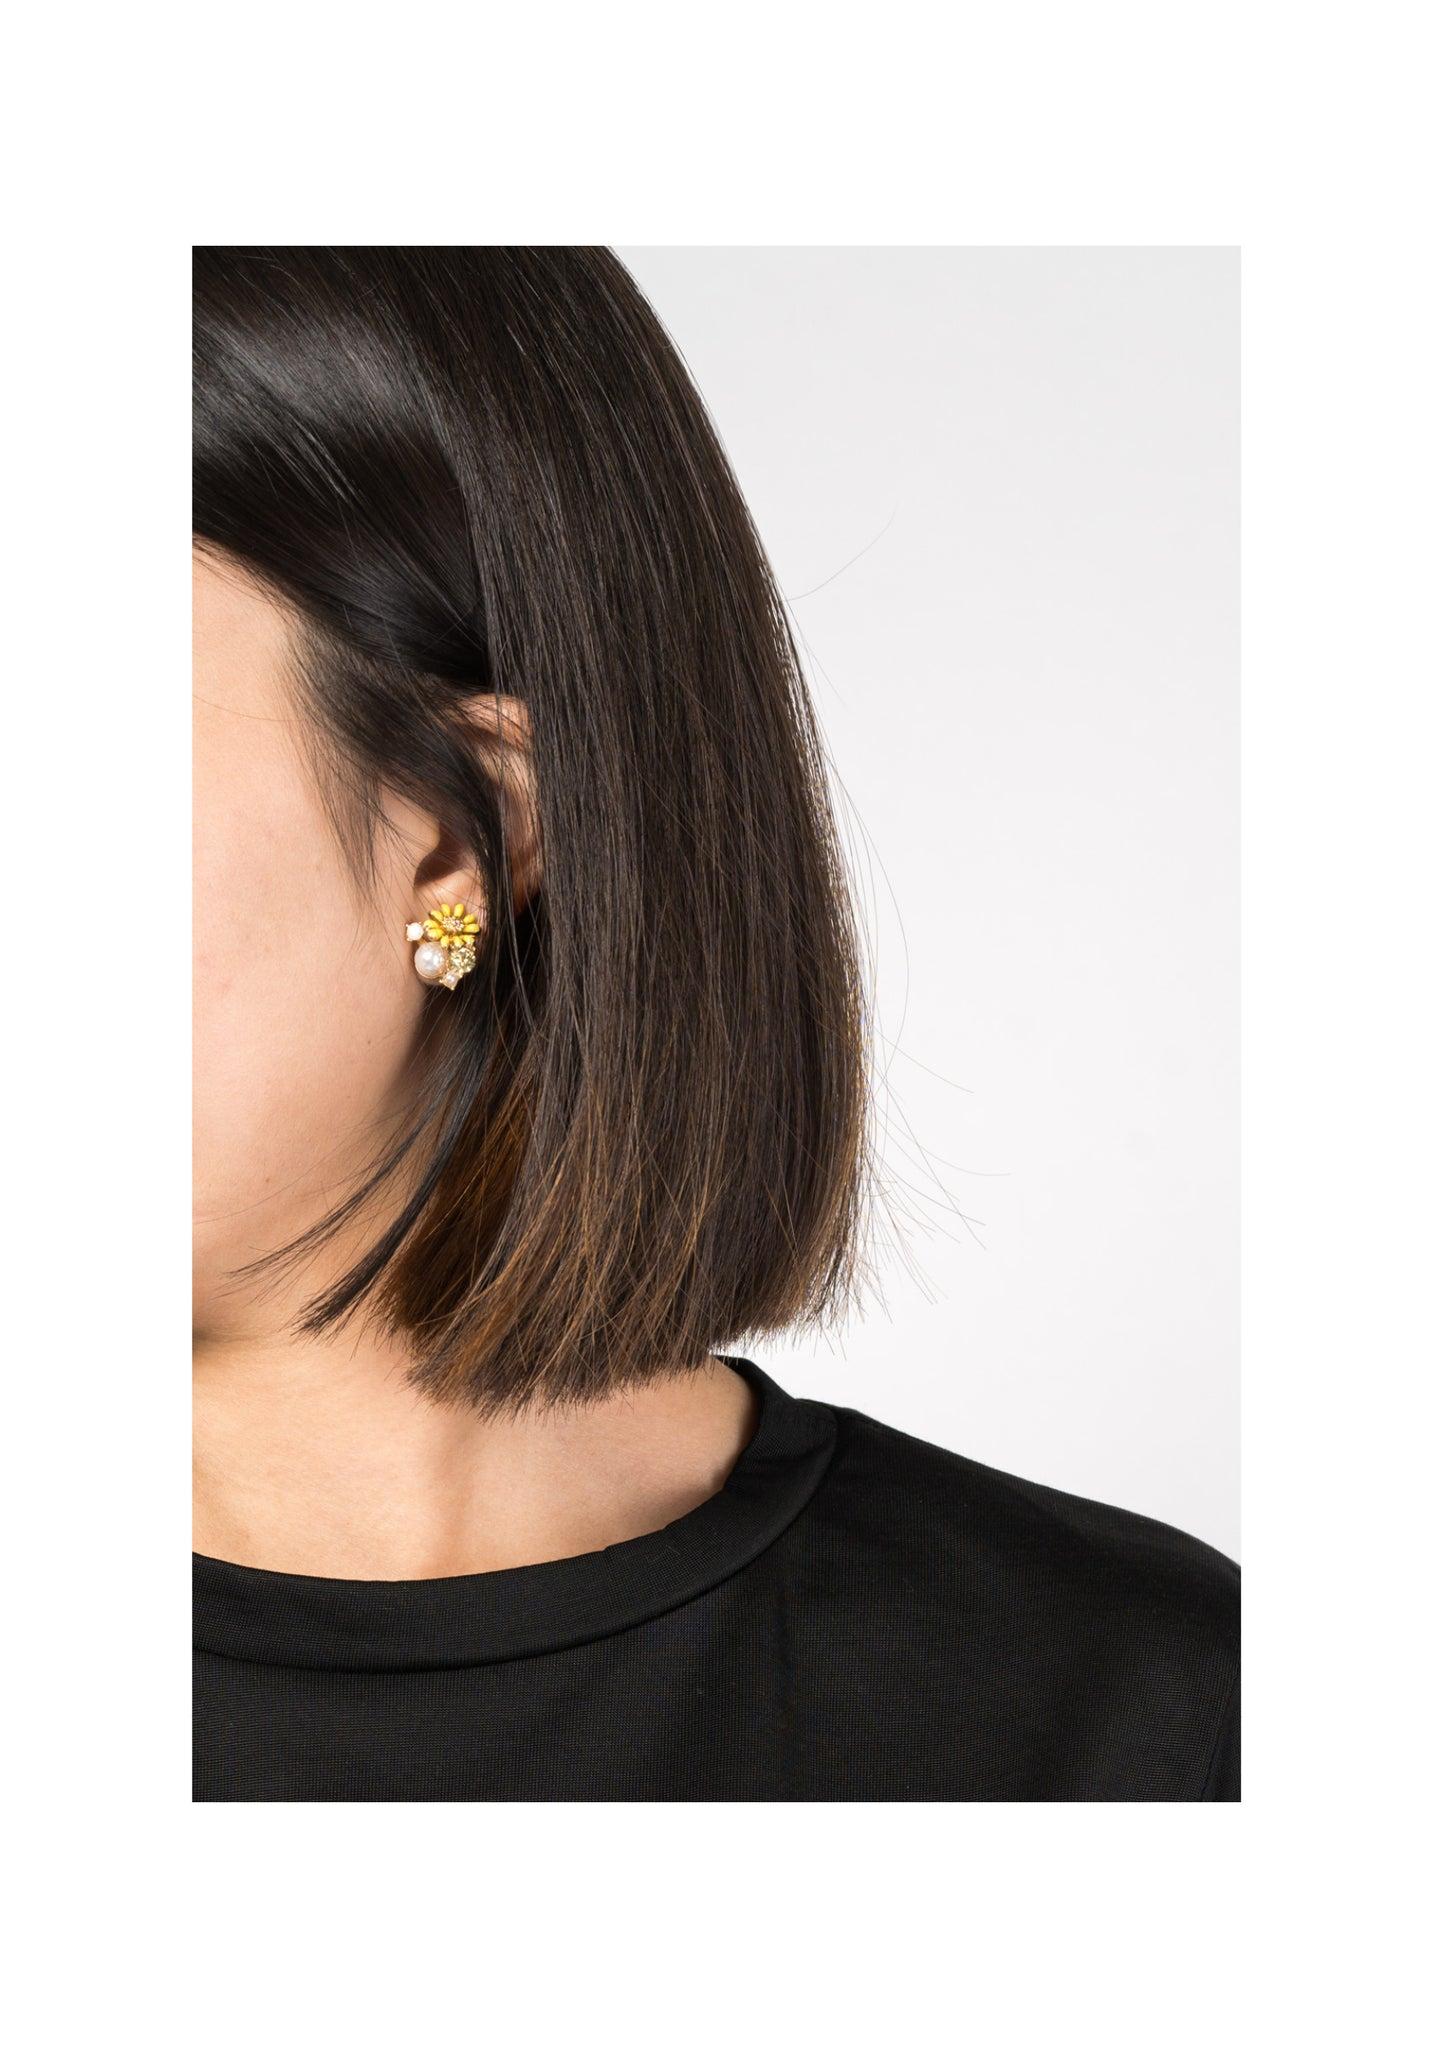 Yellow Flower Mixed Gem Earrings - whoami